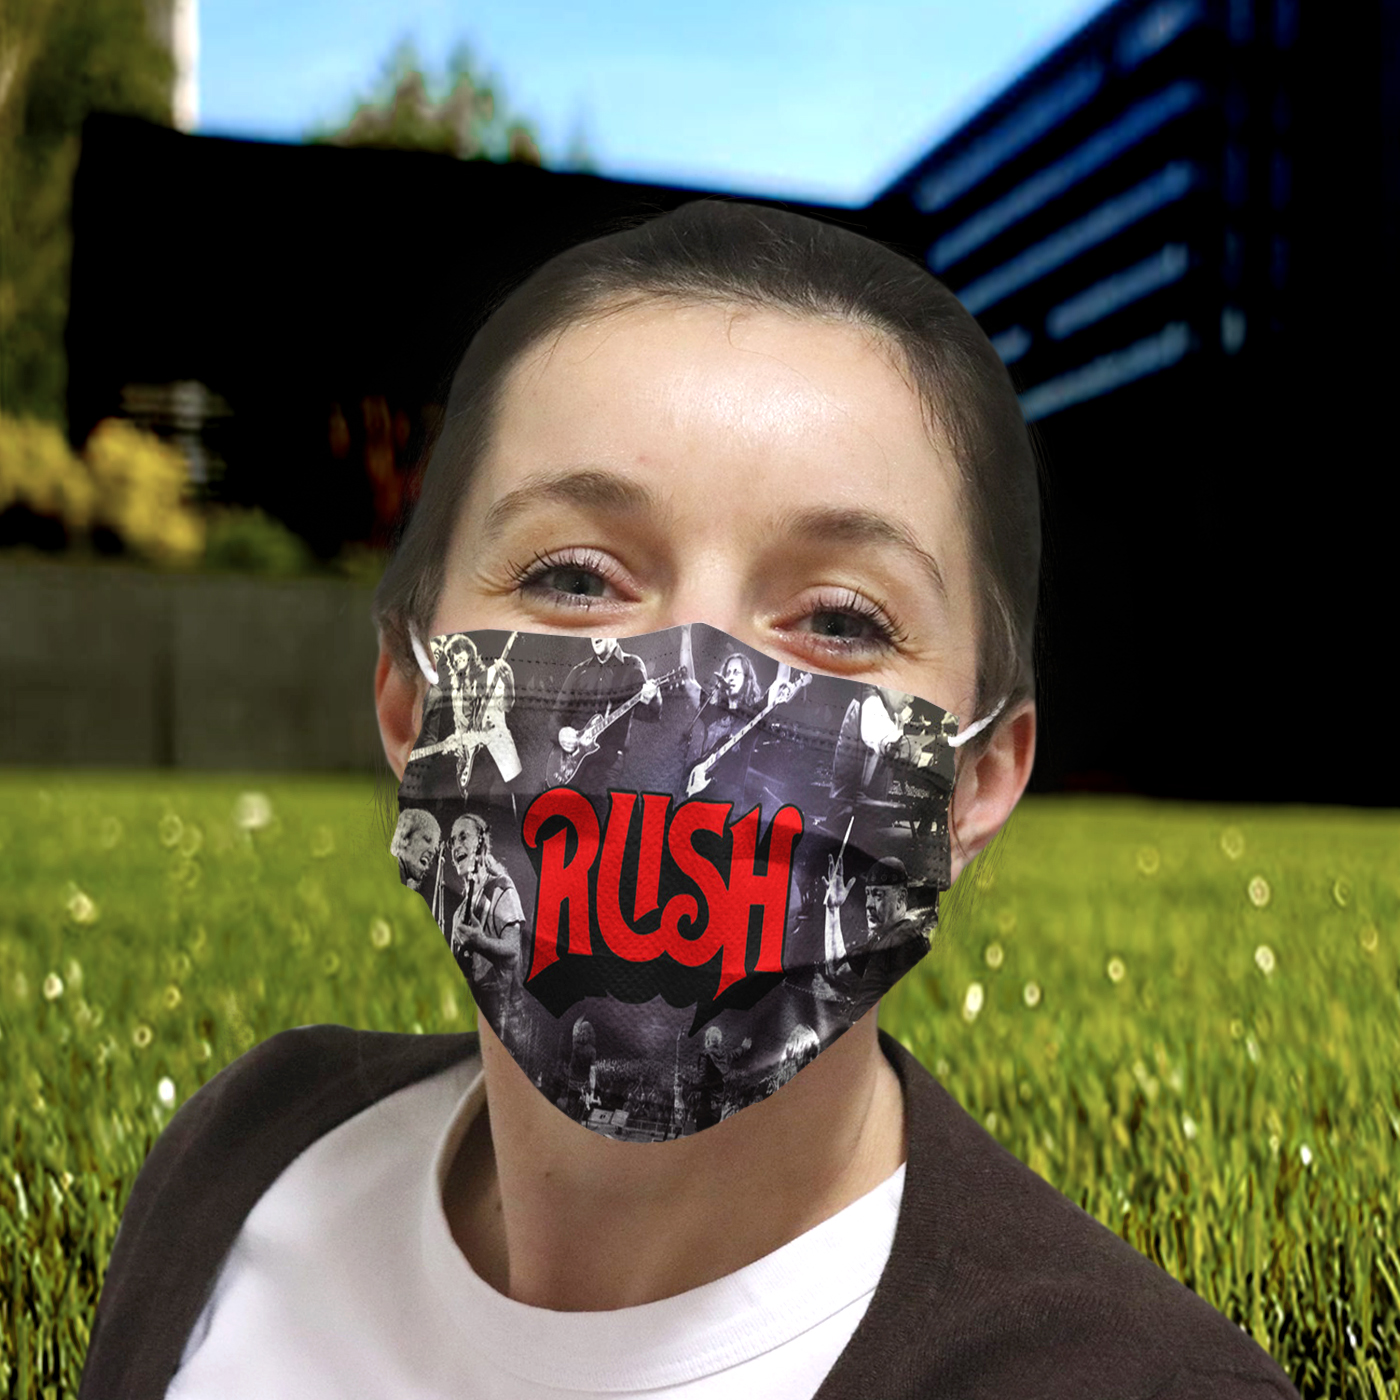 Rush rock band anti-dust cotton face mask 4